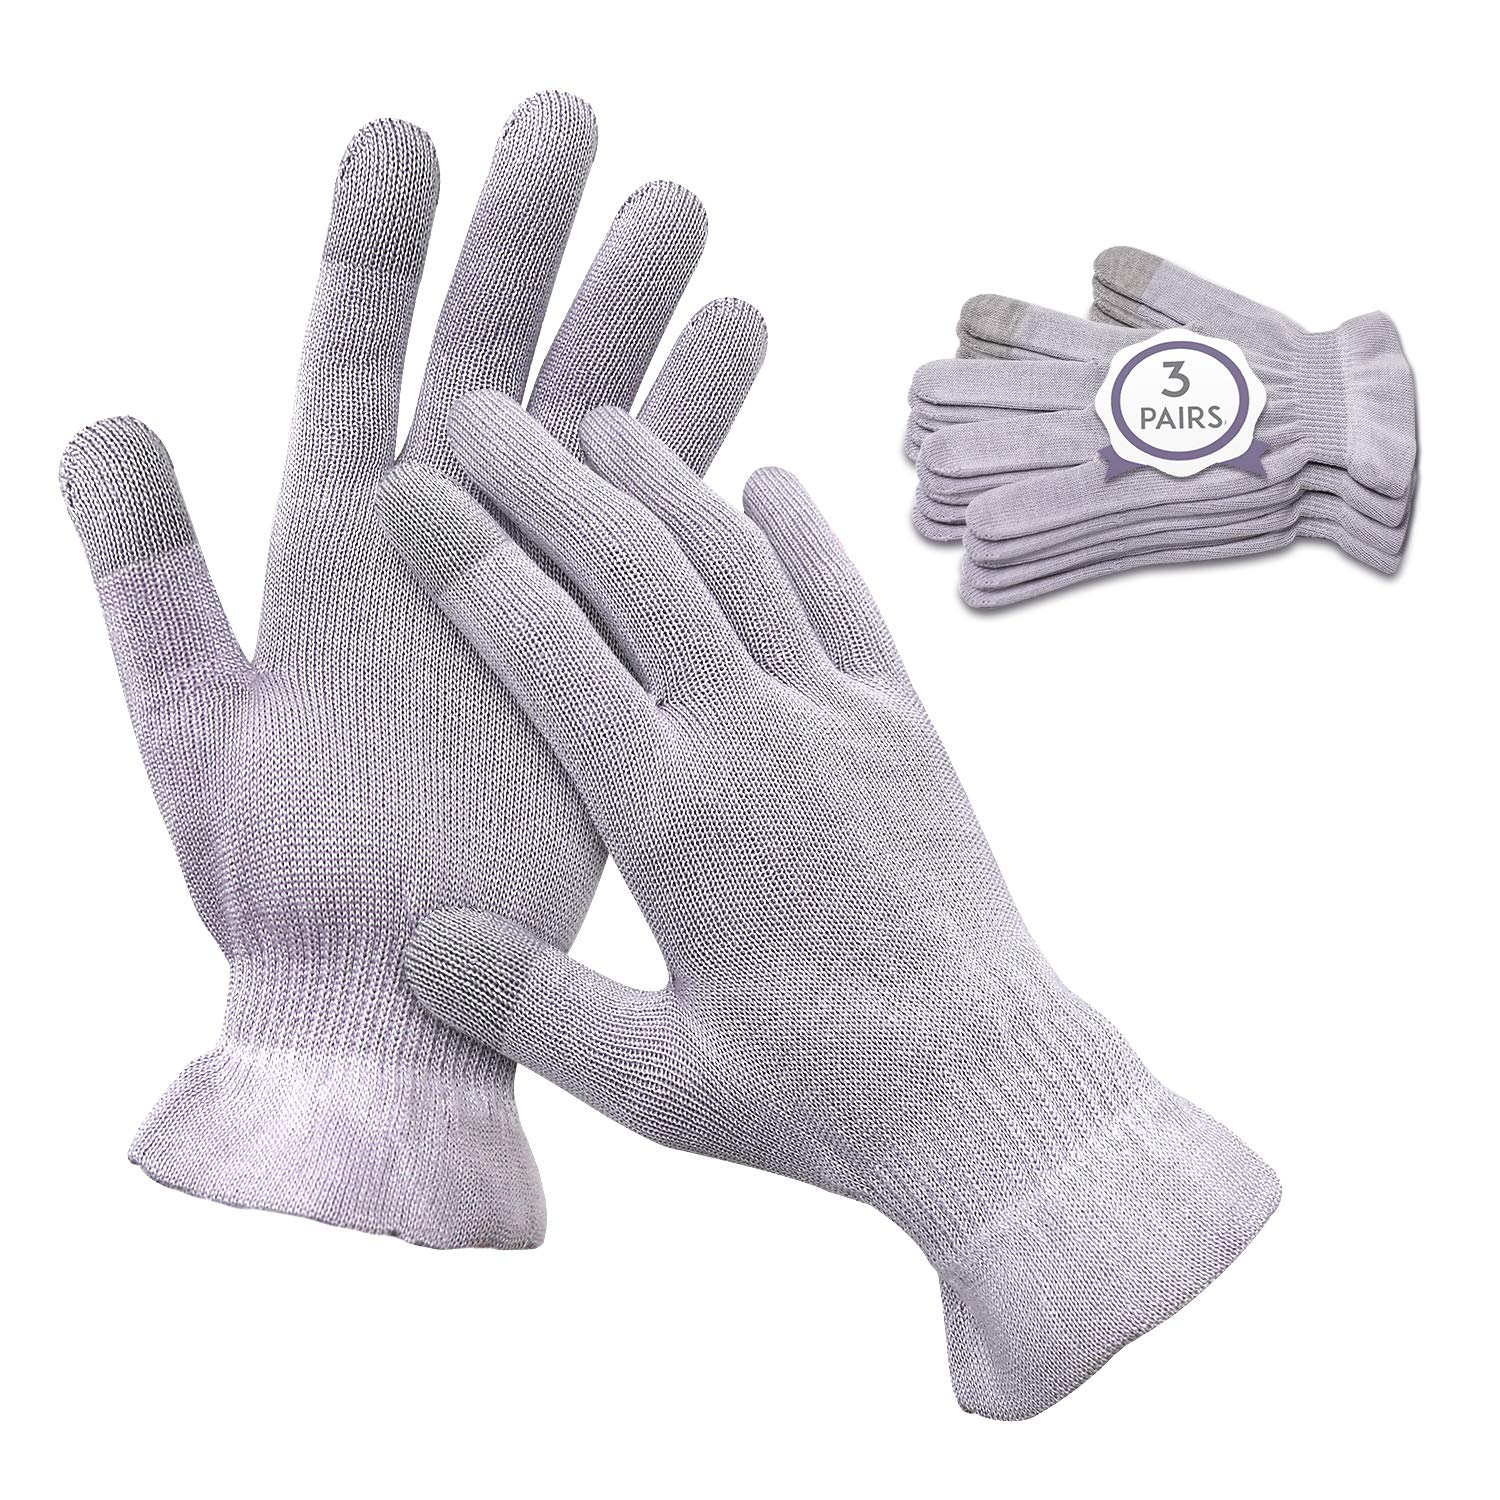 MIG4U Moisturizing Beauty Gloves Touchscreen Cotton Glove for SPA, Eczema, Dry Hands, Cosmetic Treatment, grey 3 pairs size s/m